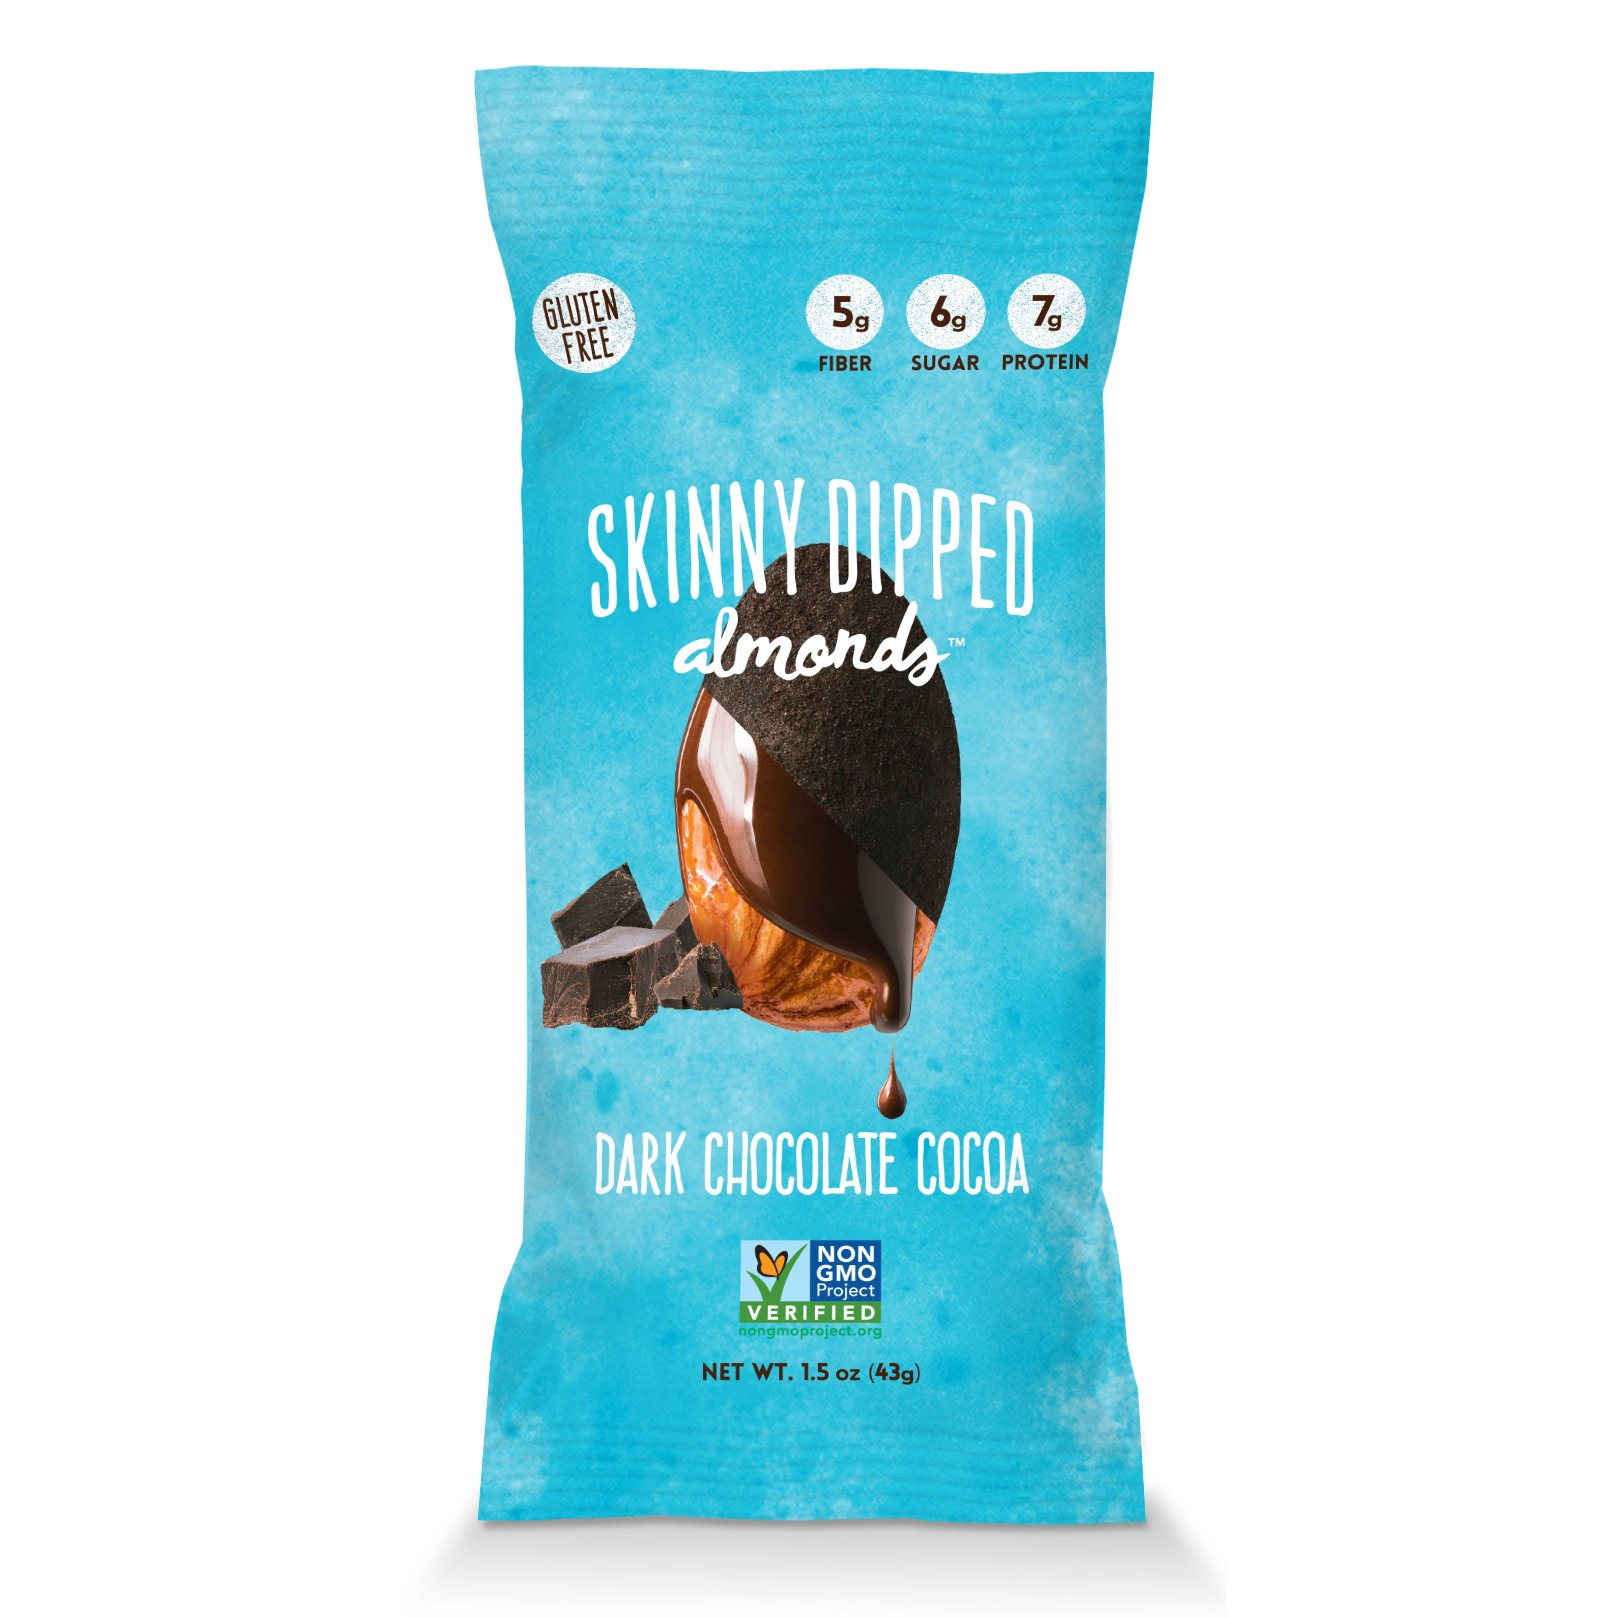 Skinny Dipped Almonds, Dark Chocolate Almonds Cocoa, 1.5oz, 7g plant based protein, Non GMO project verified, gluten free, 9g sugar, 230 calories (pack of 10)